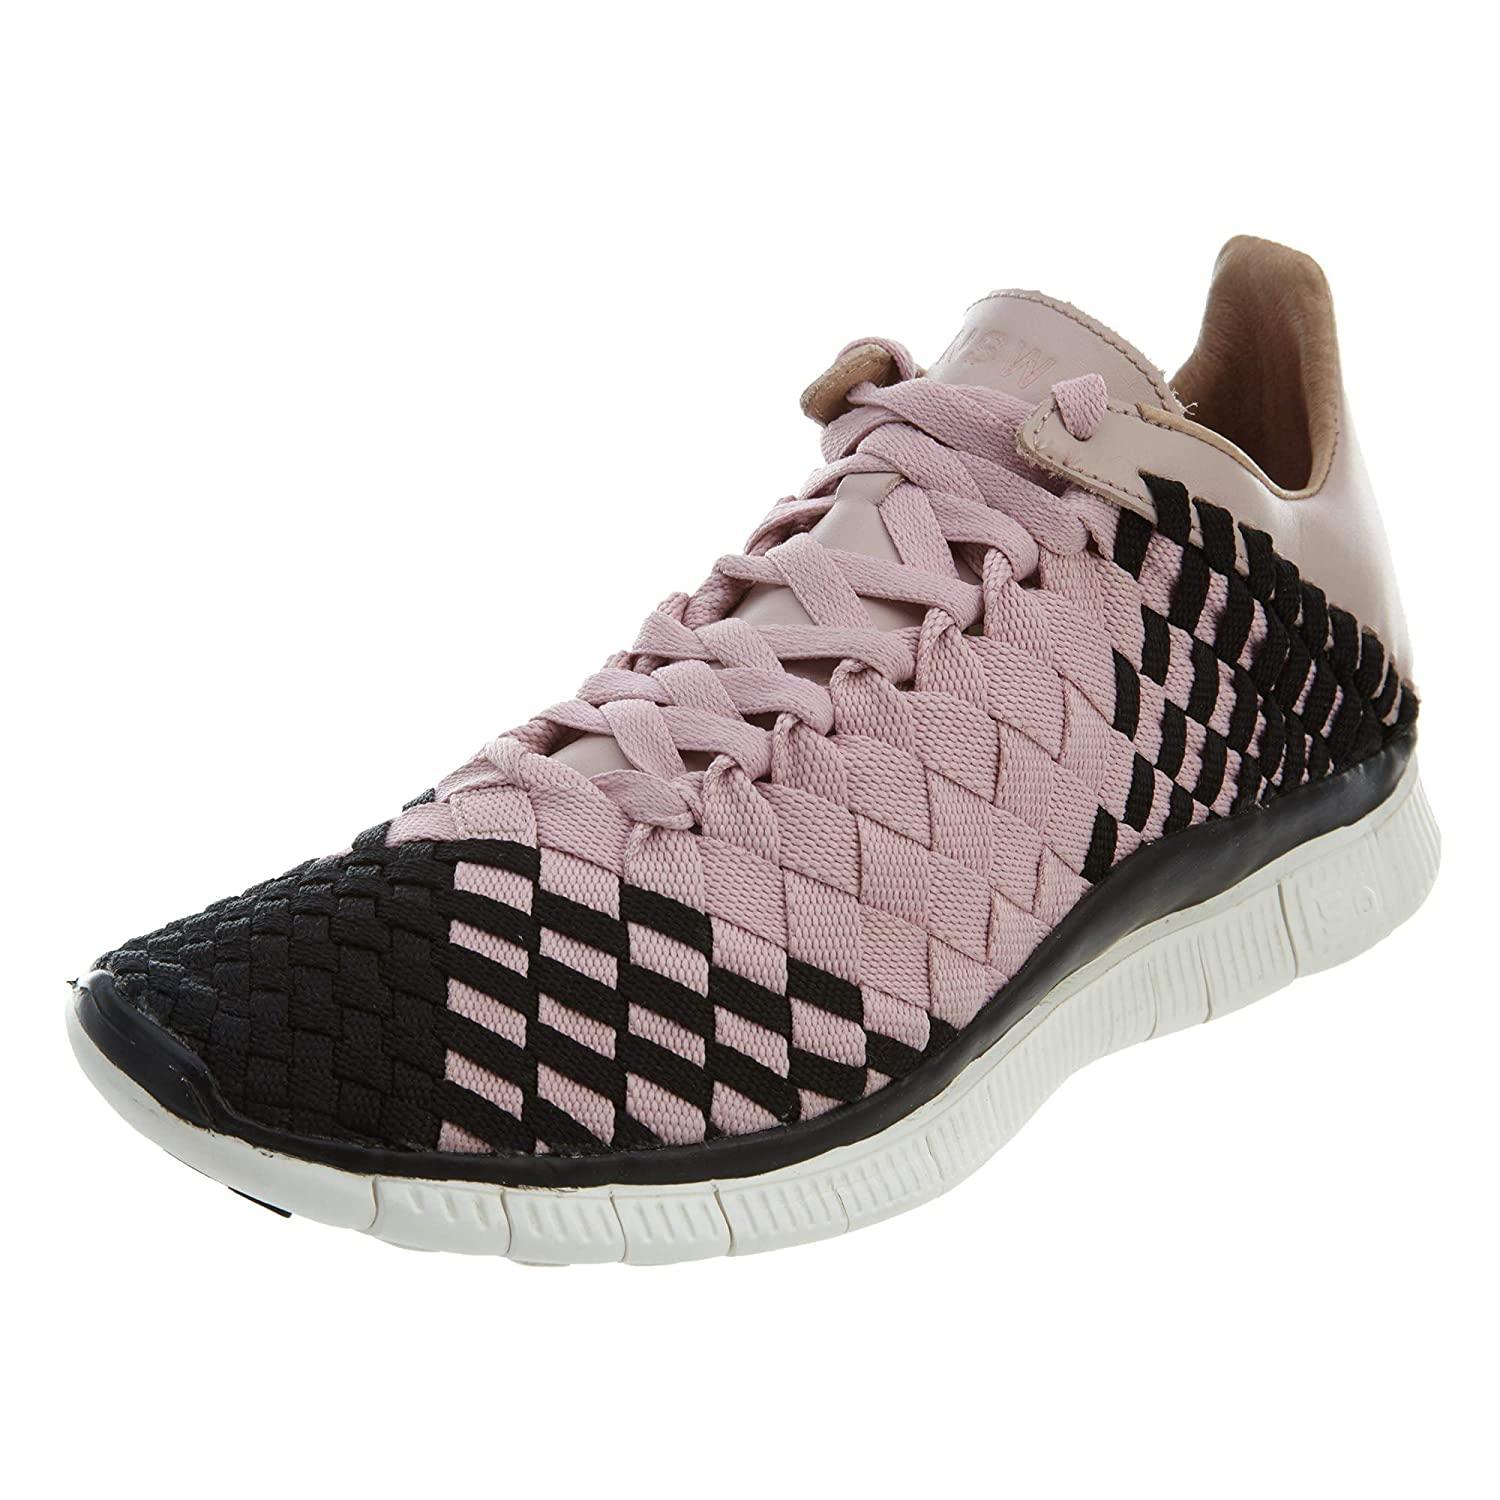 outlet store 77fc5 18693 Amazon.com   Nike Womens Free Inneva Woven Sp Black Champagne-Sail  598153-050 10   Fashion Sneakers